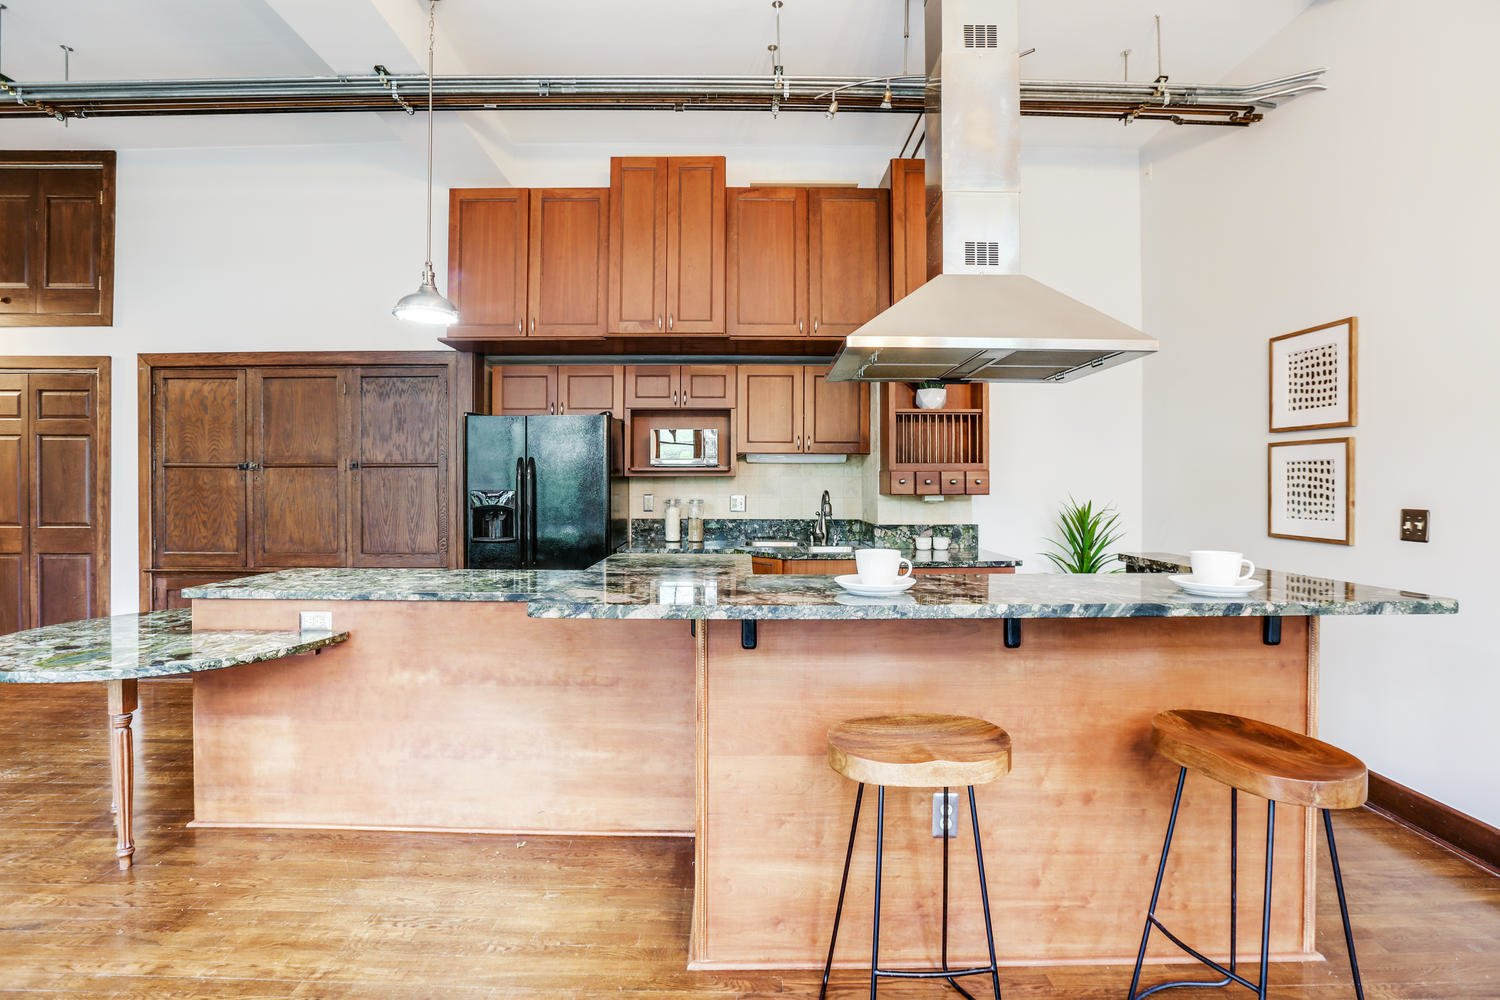 Kitchen, Quartzite Counter, Range Hood, Refrigerator, Medium Hardwood Floor, Pendant Lighting, Undermount Sink, Microwave, and Wood Cabinet A look at the open kitchen.  Photo 1 of 9 in Grab This Dazzling Detroit Loft in a Historic School Building For $450K